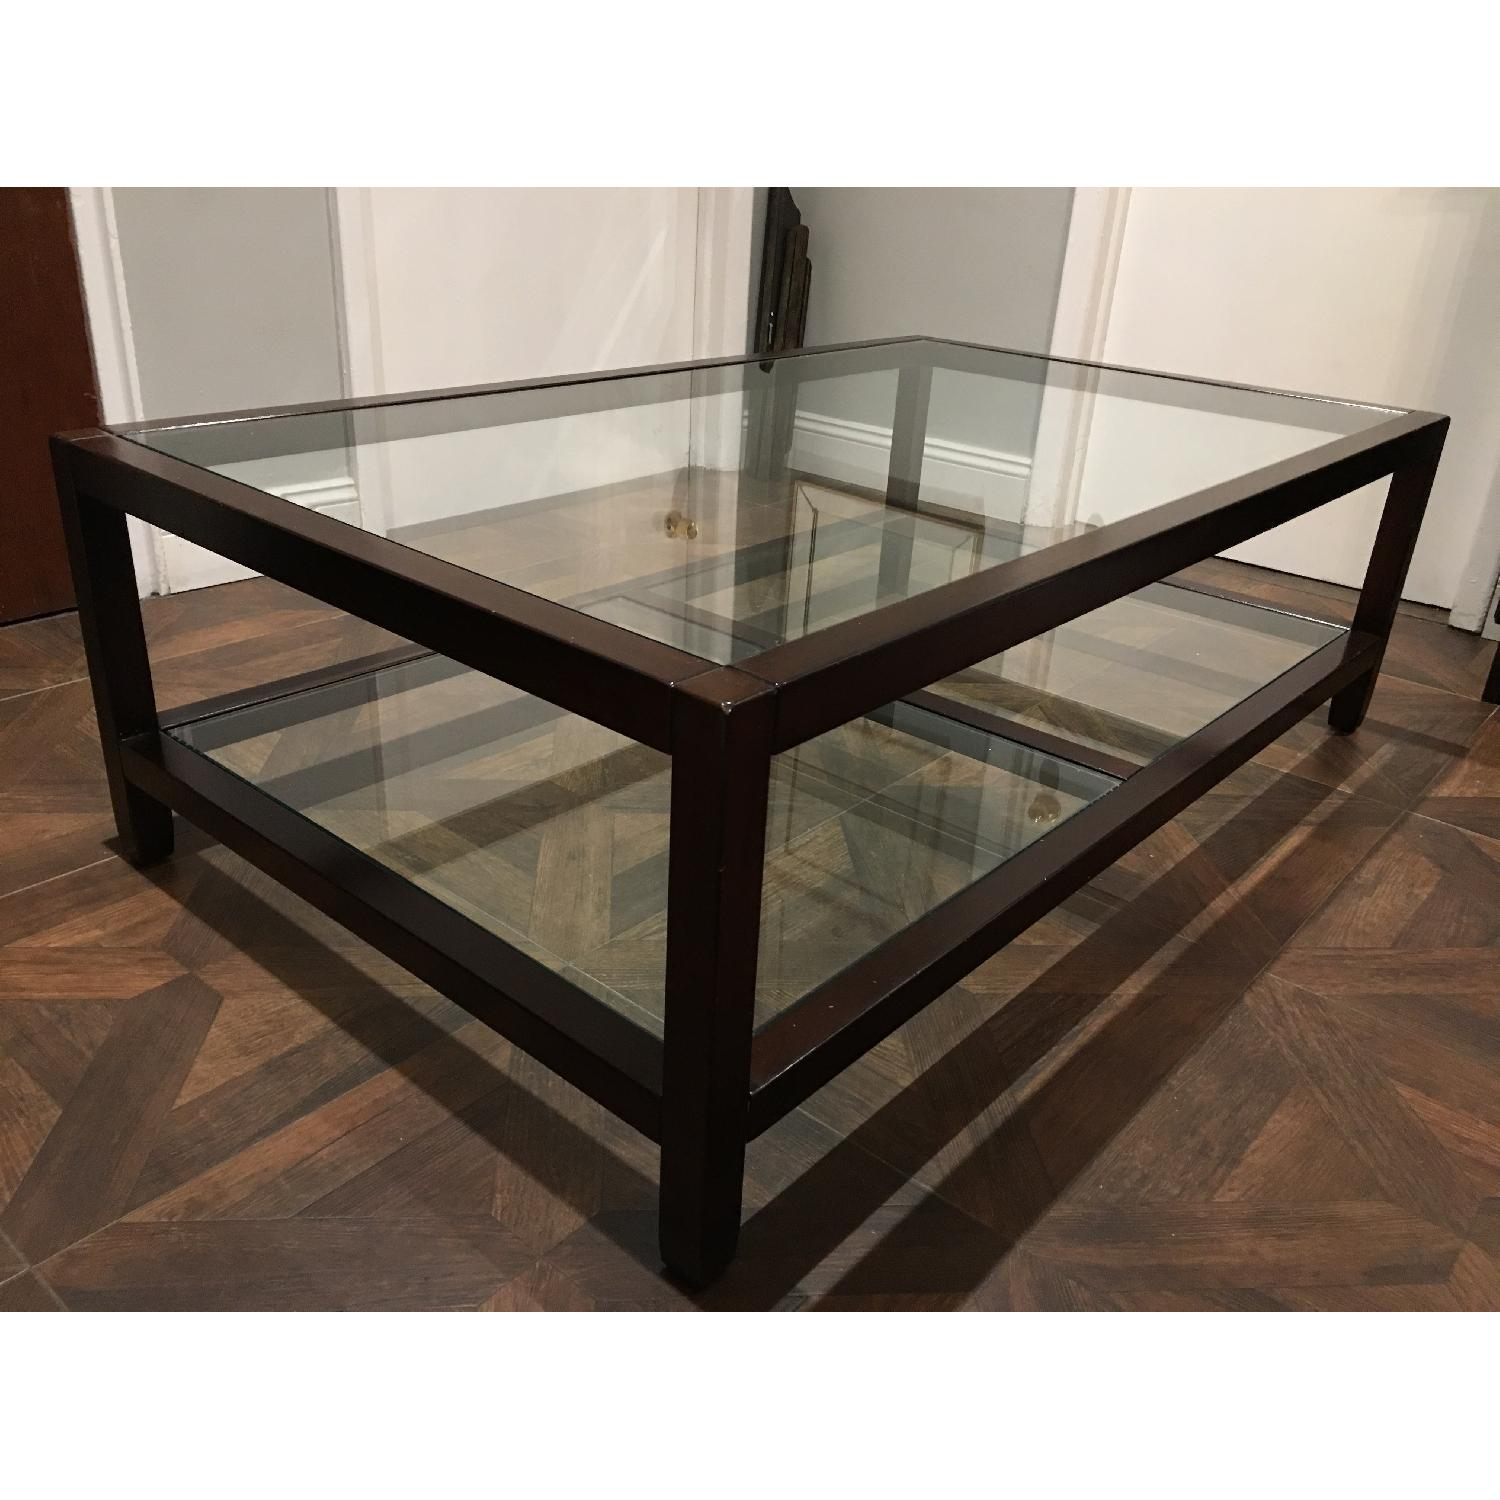 Pottery Barn Glass & Wood Coffee Table - image-8